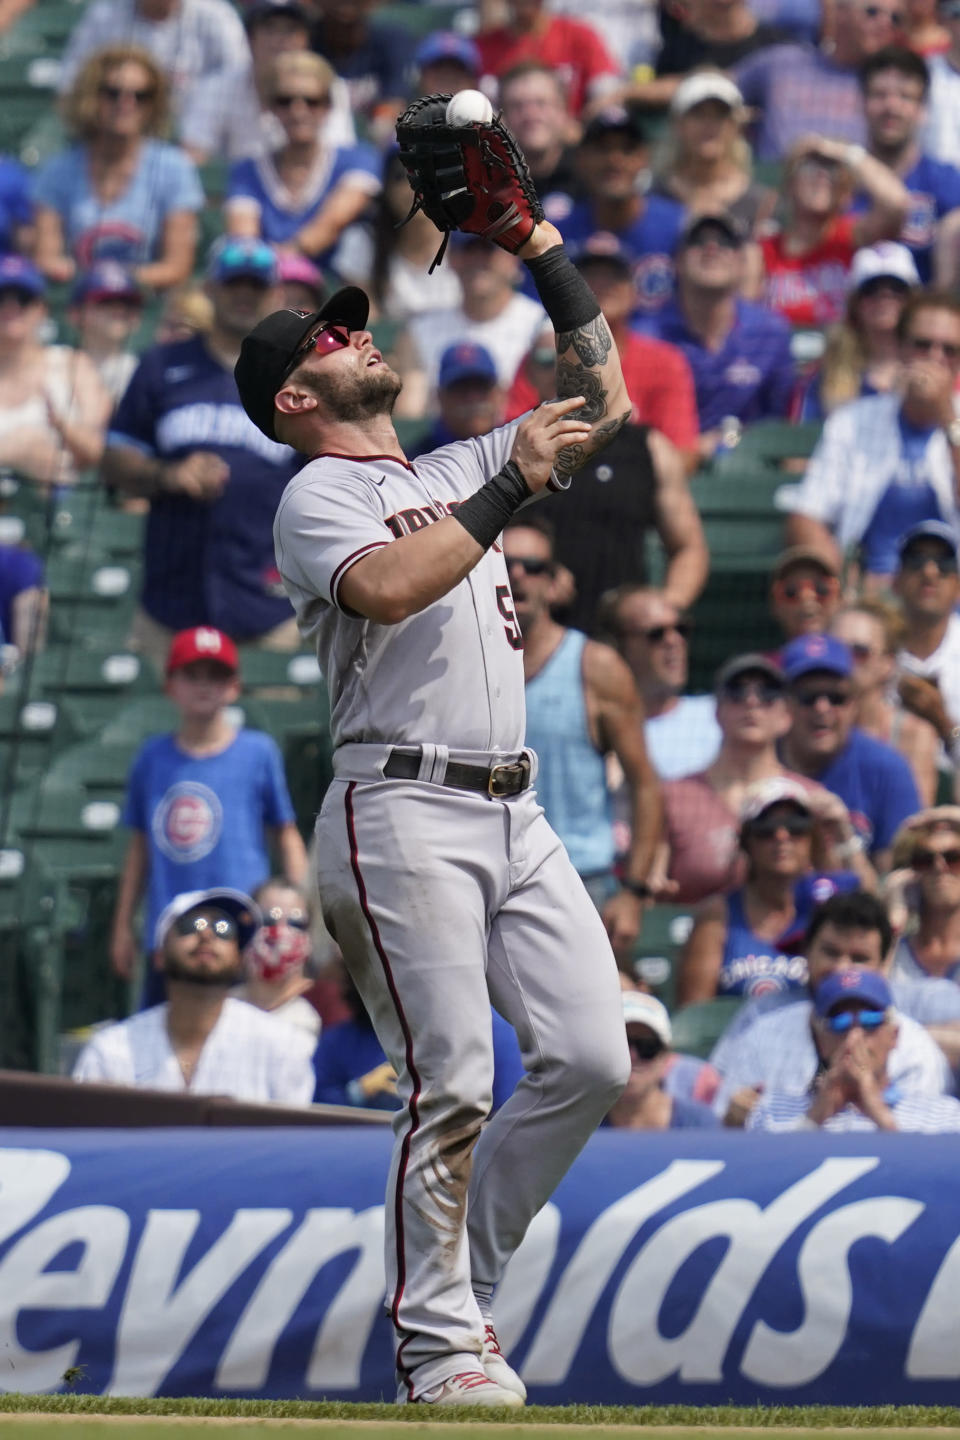 Arizona Diamondbacks first baseman Christian Walker catches a fly ball hit by Chicago Cubs' Javier Baez during the fifth inning of a baseball game in Chicago, Saturday, July 24, 2021. (AP Photo/Nam Y. Huh)